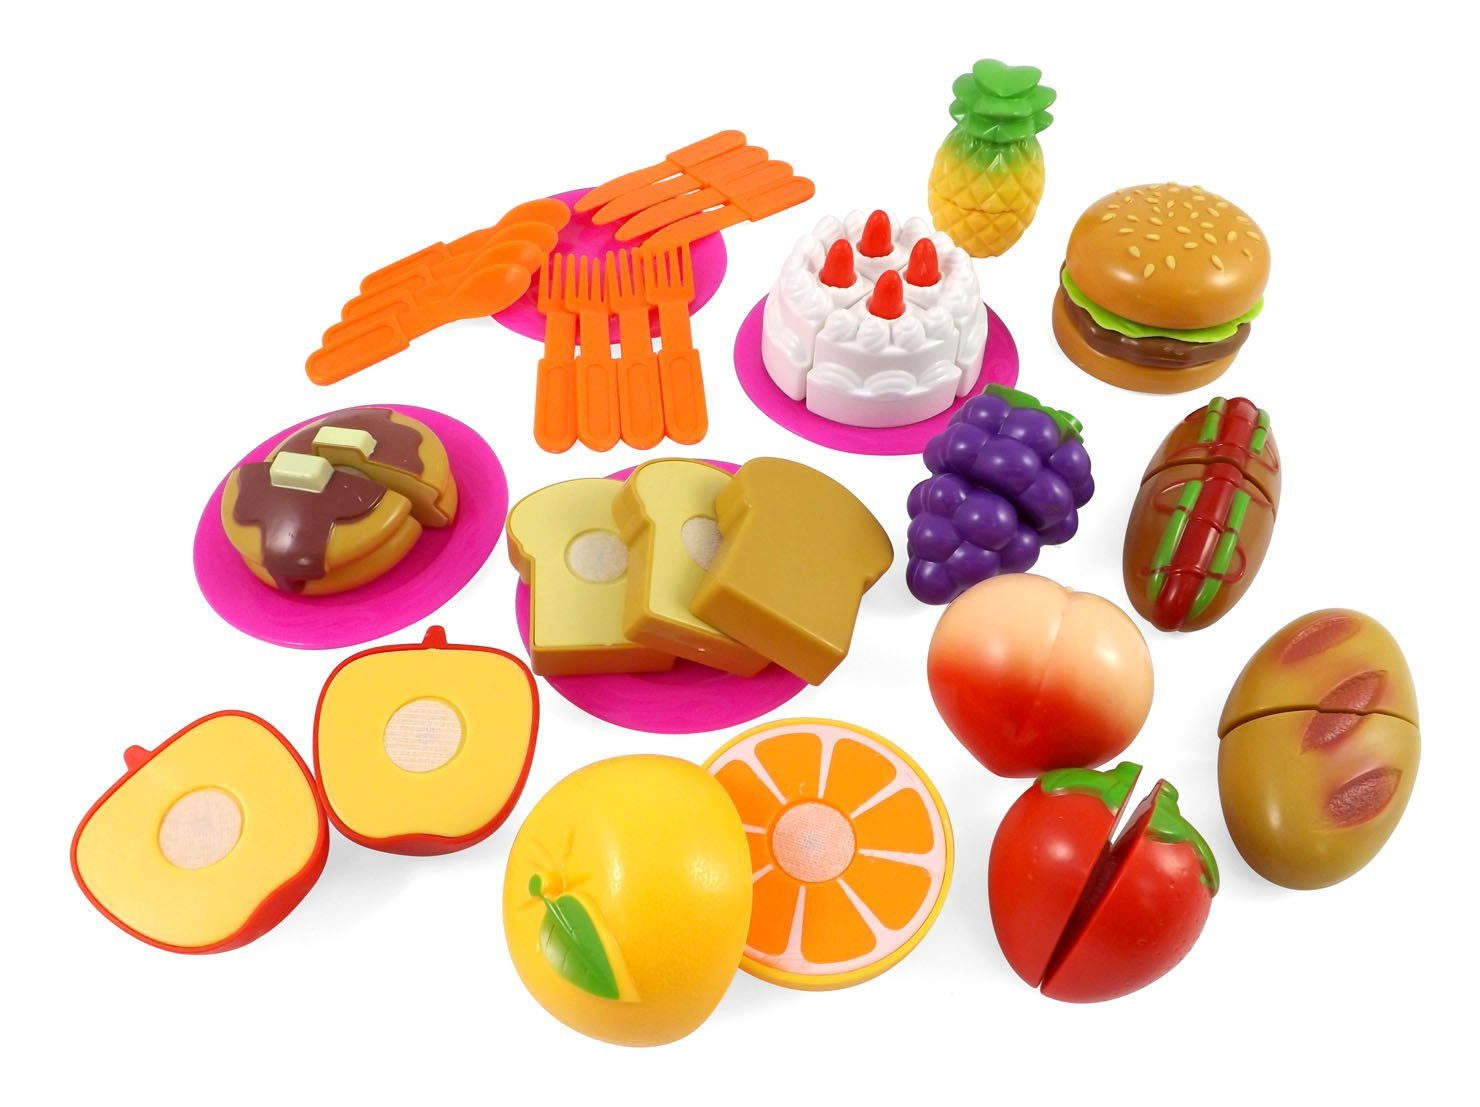 Kitchen Fun Cutting Fruits & Fast Food Playset For Kids